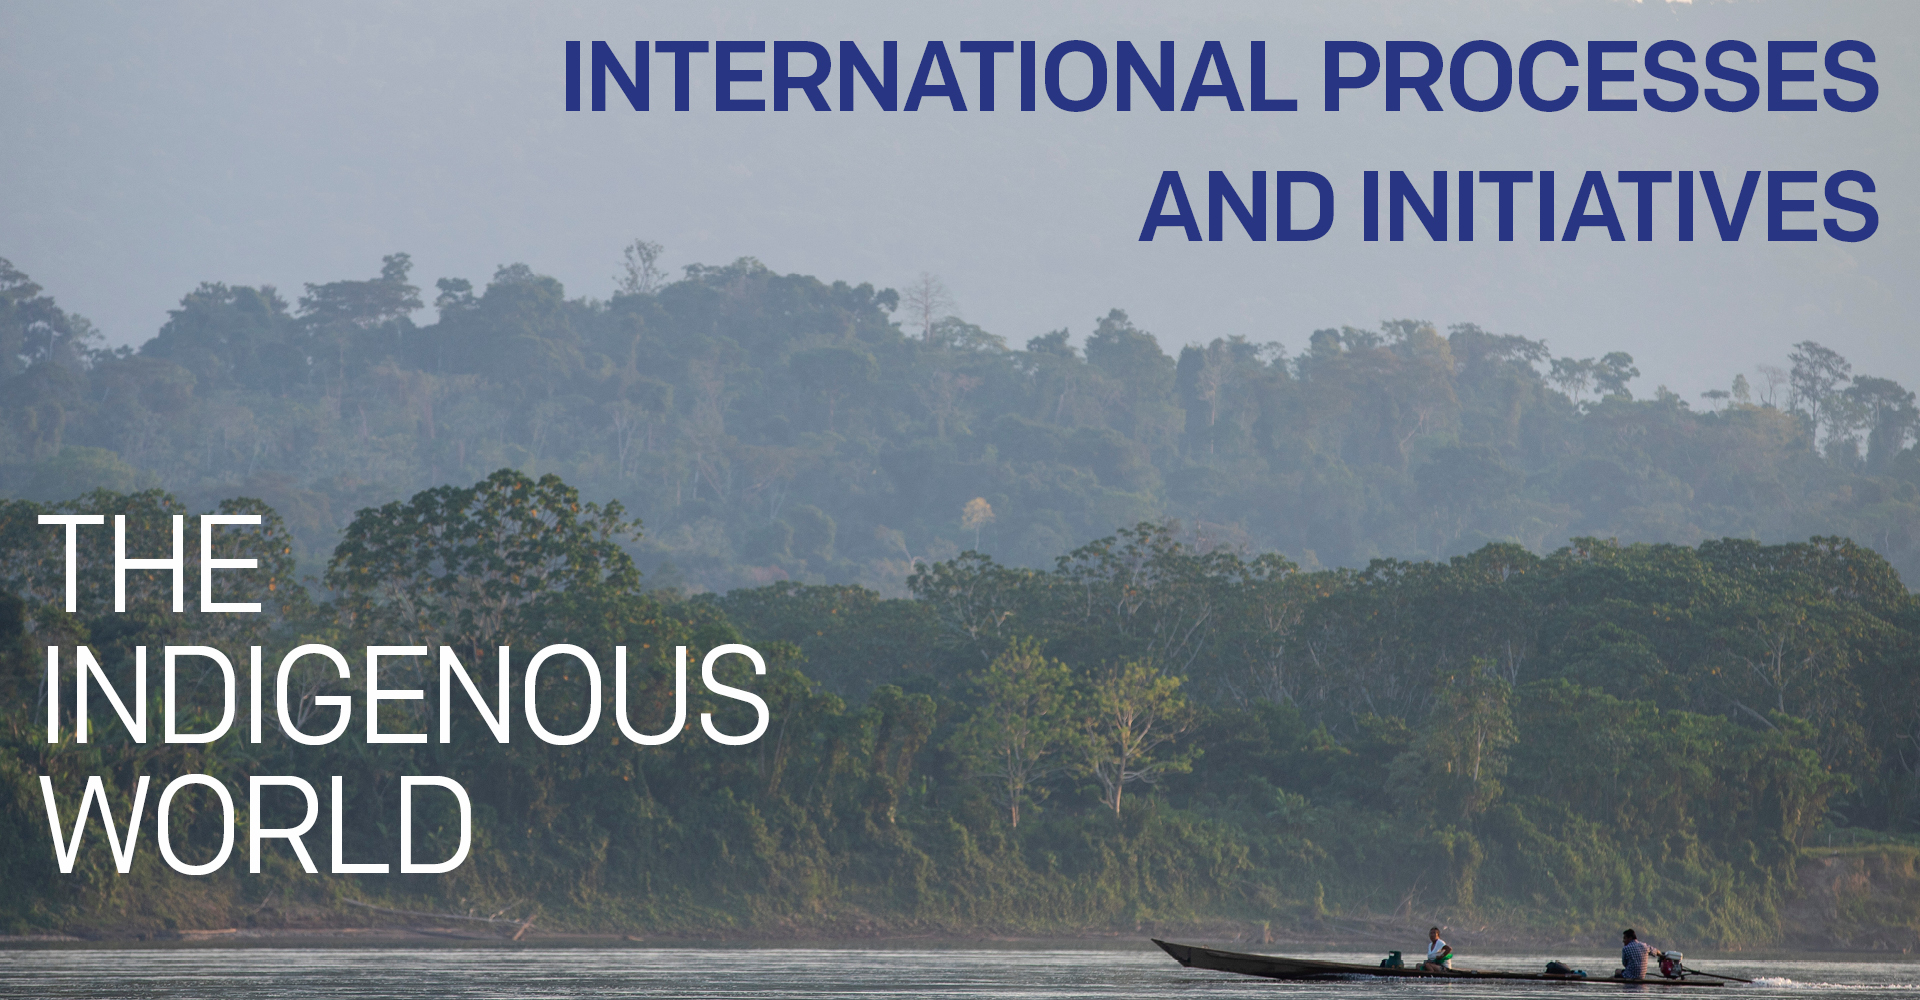 International Processes and Initiatives